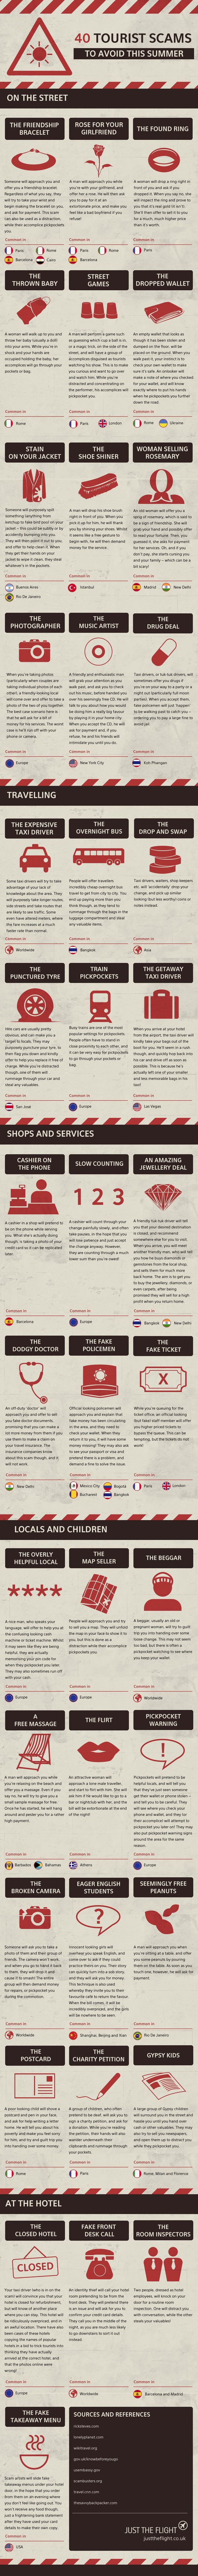 Travel Scams Graphic